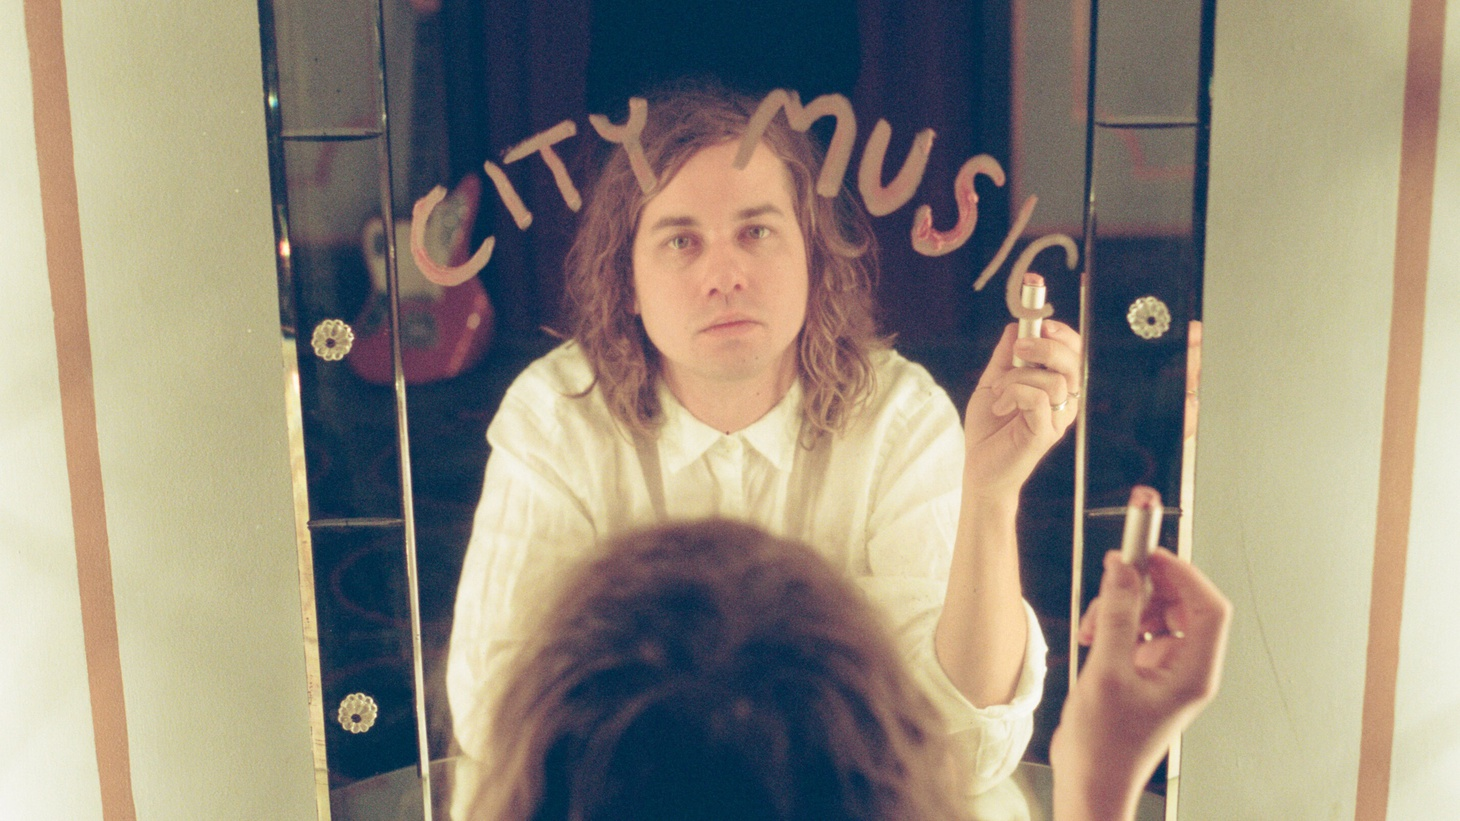 """Kevin Morby is a well-traveled singer/songwriter with a voice and perspective well beyond his years. The Kansas City native is now based in LA and joins us for a live set just a few days before the release of his new album """"City Music""""."""